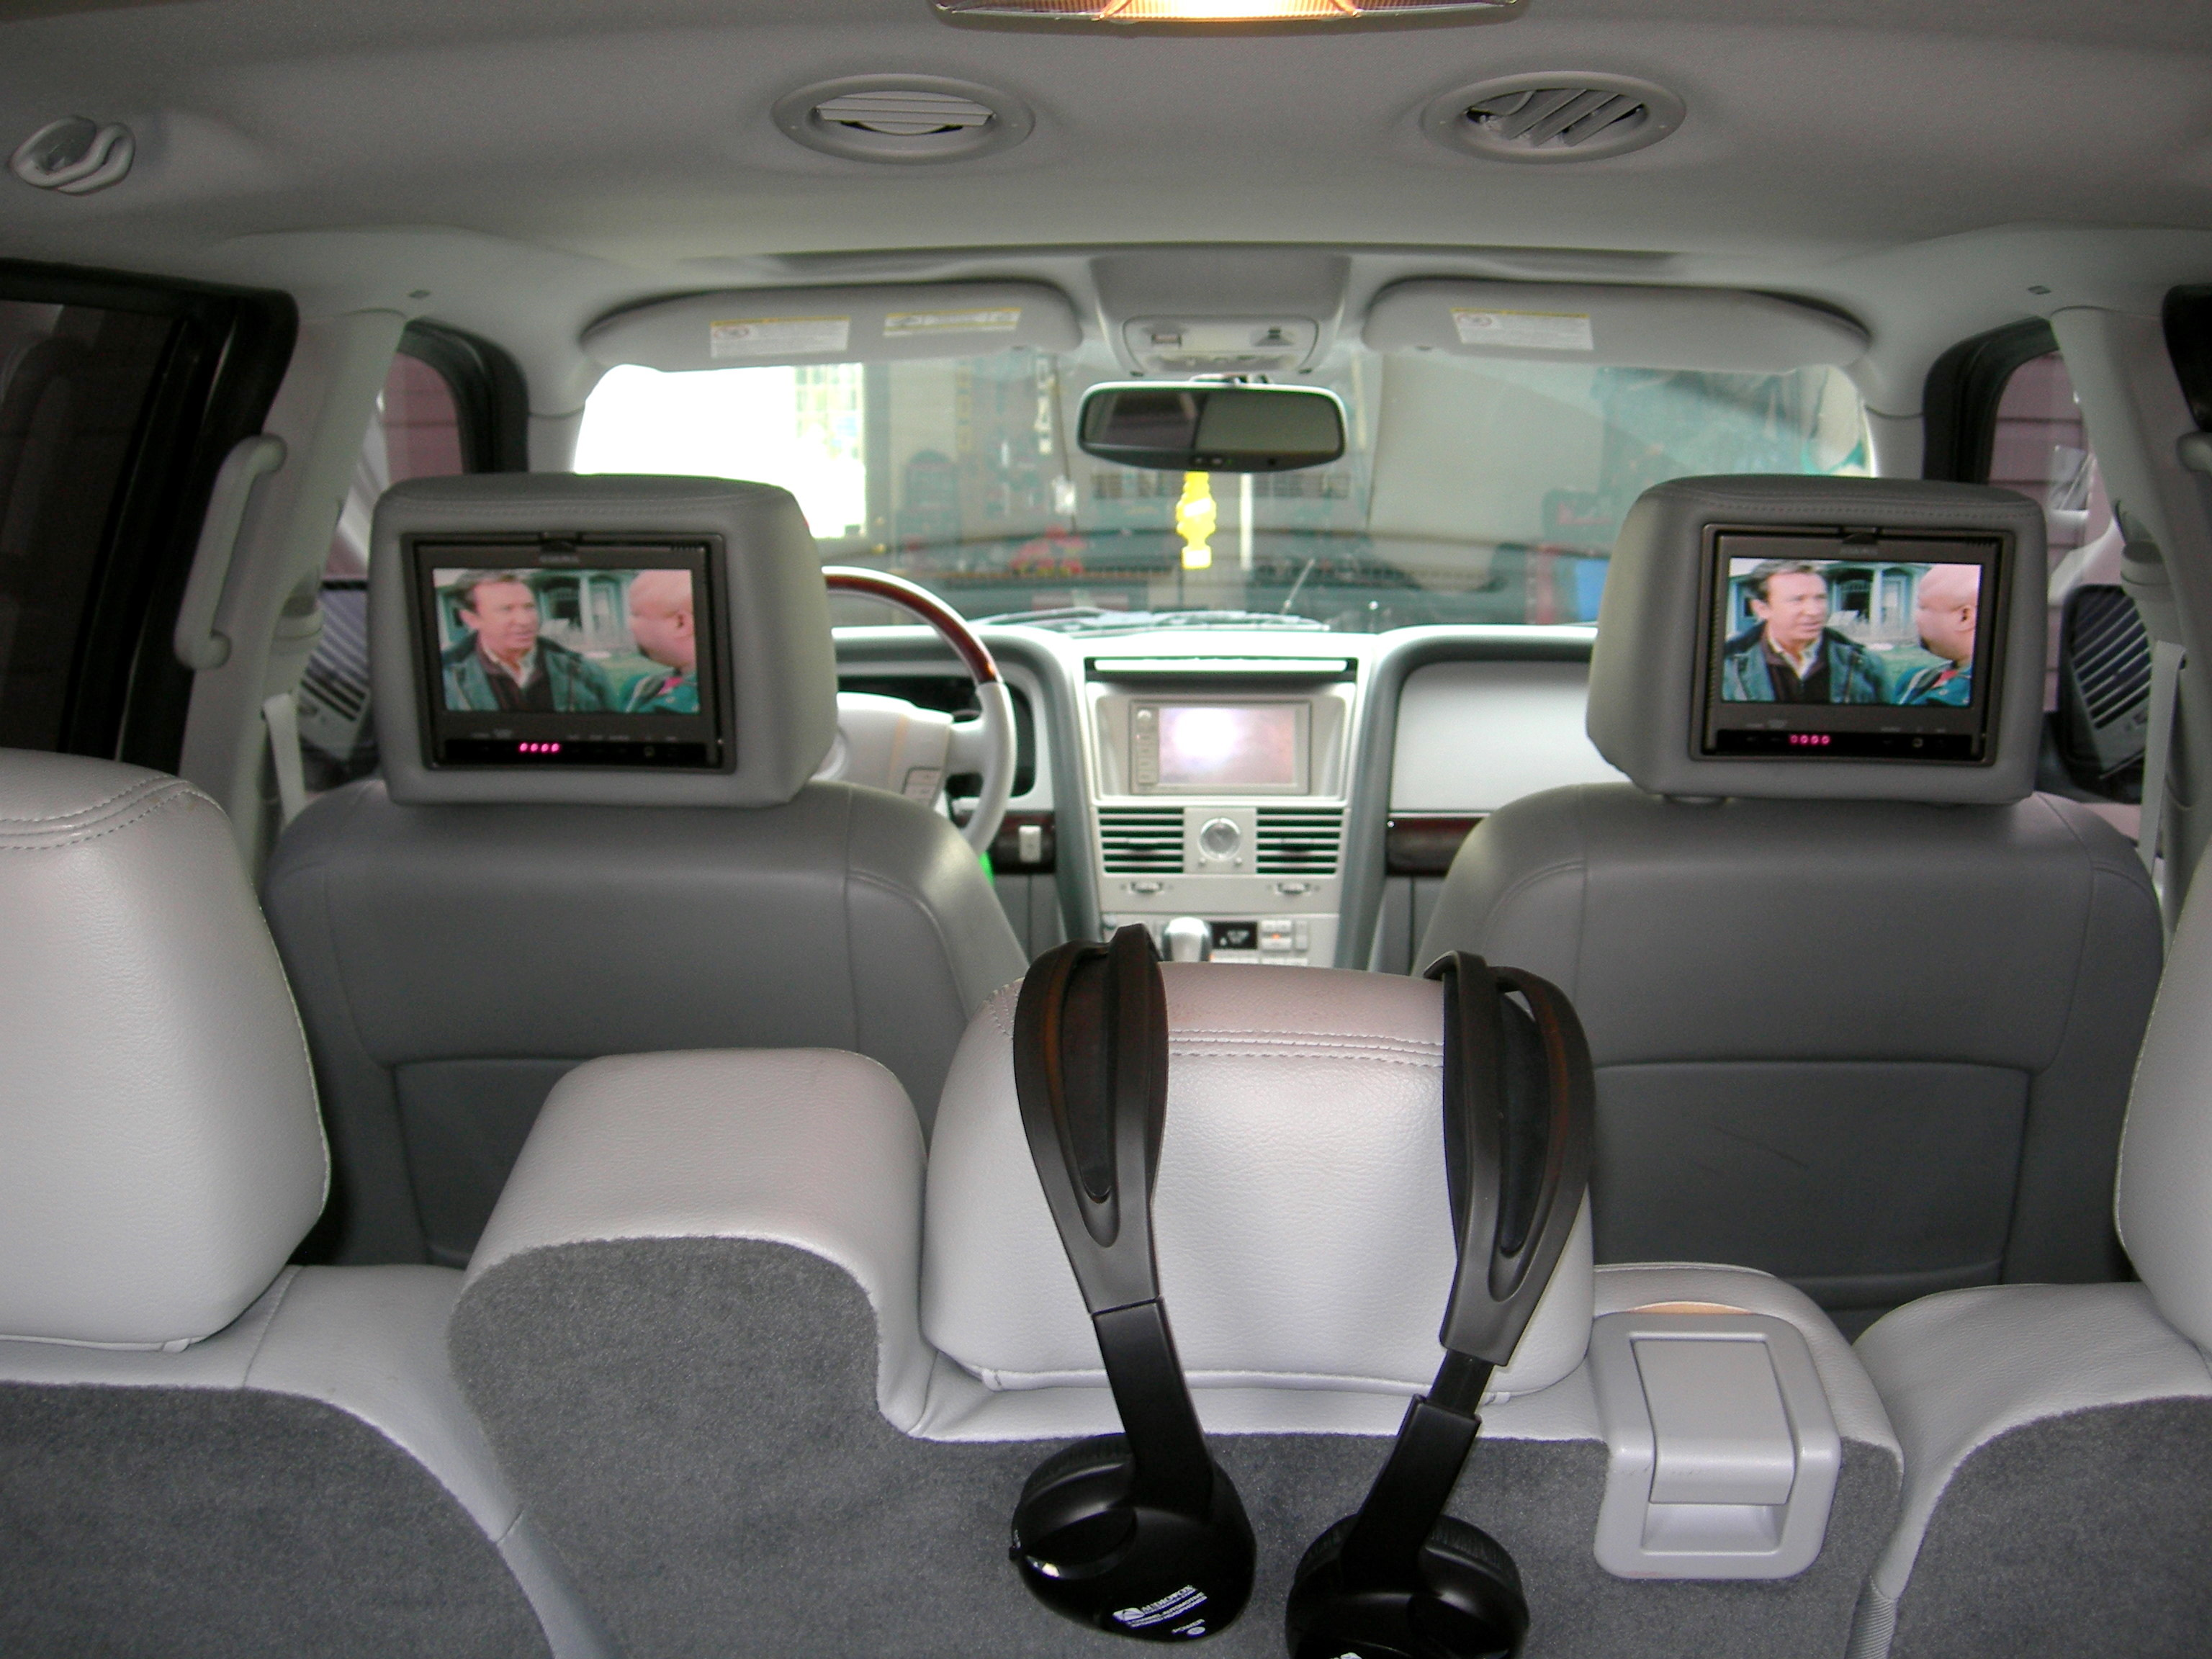 dab86 2004 lincoln aviator specs photos modification. Black Bedroom Furniture Sets. Home Design Ideas